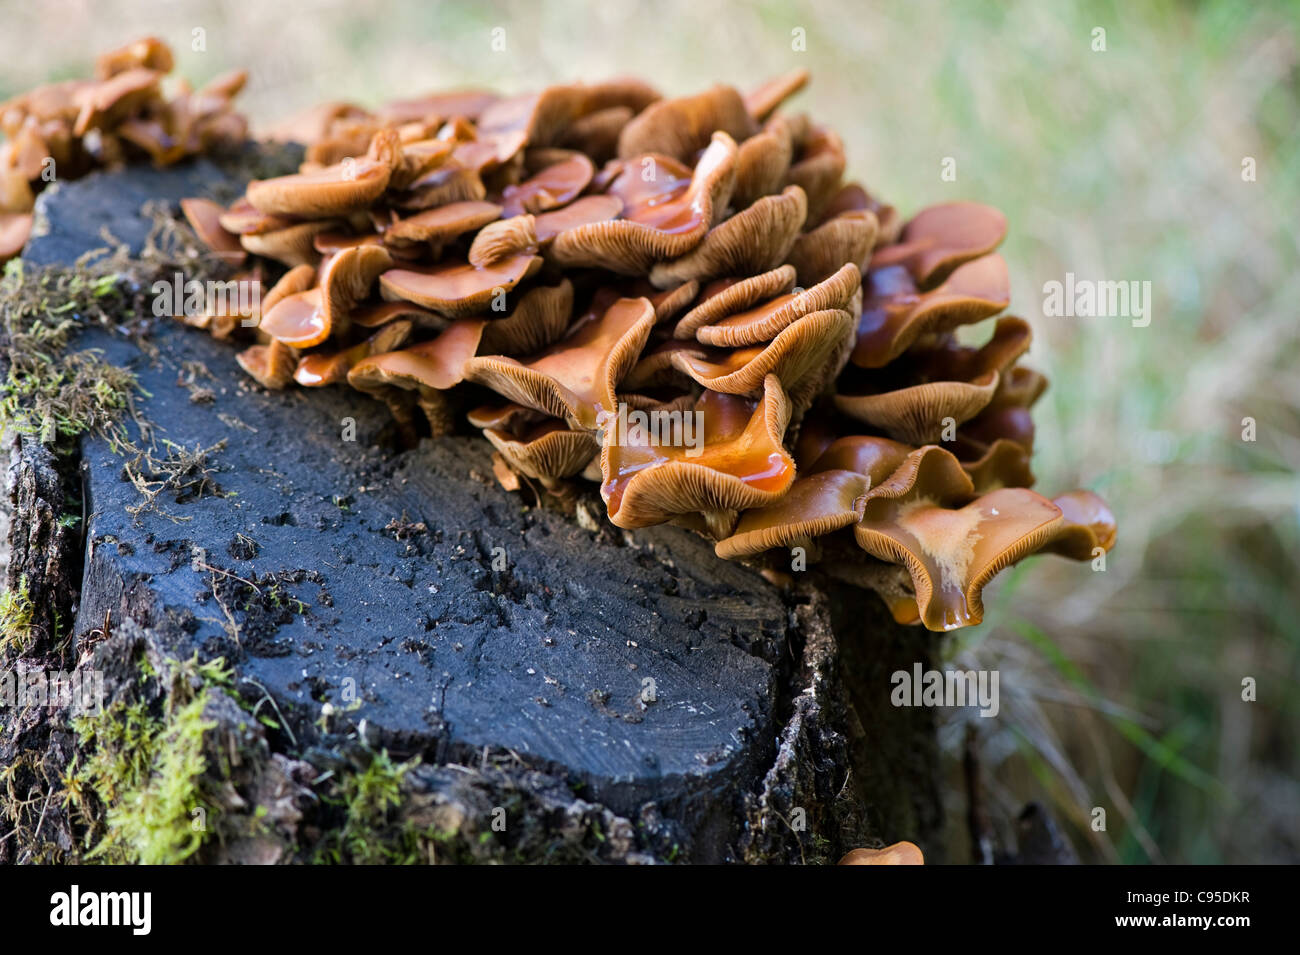 Orange clumps of bracket -shaped fungus - polypore fungi growing on a decaying mossy tree stump. - Stock Image